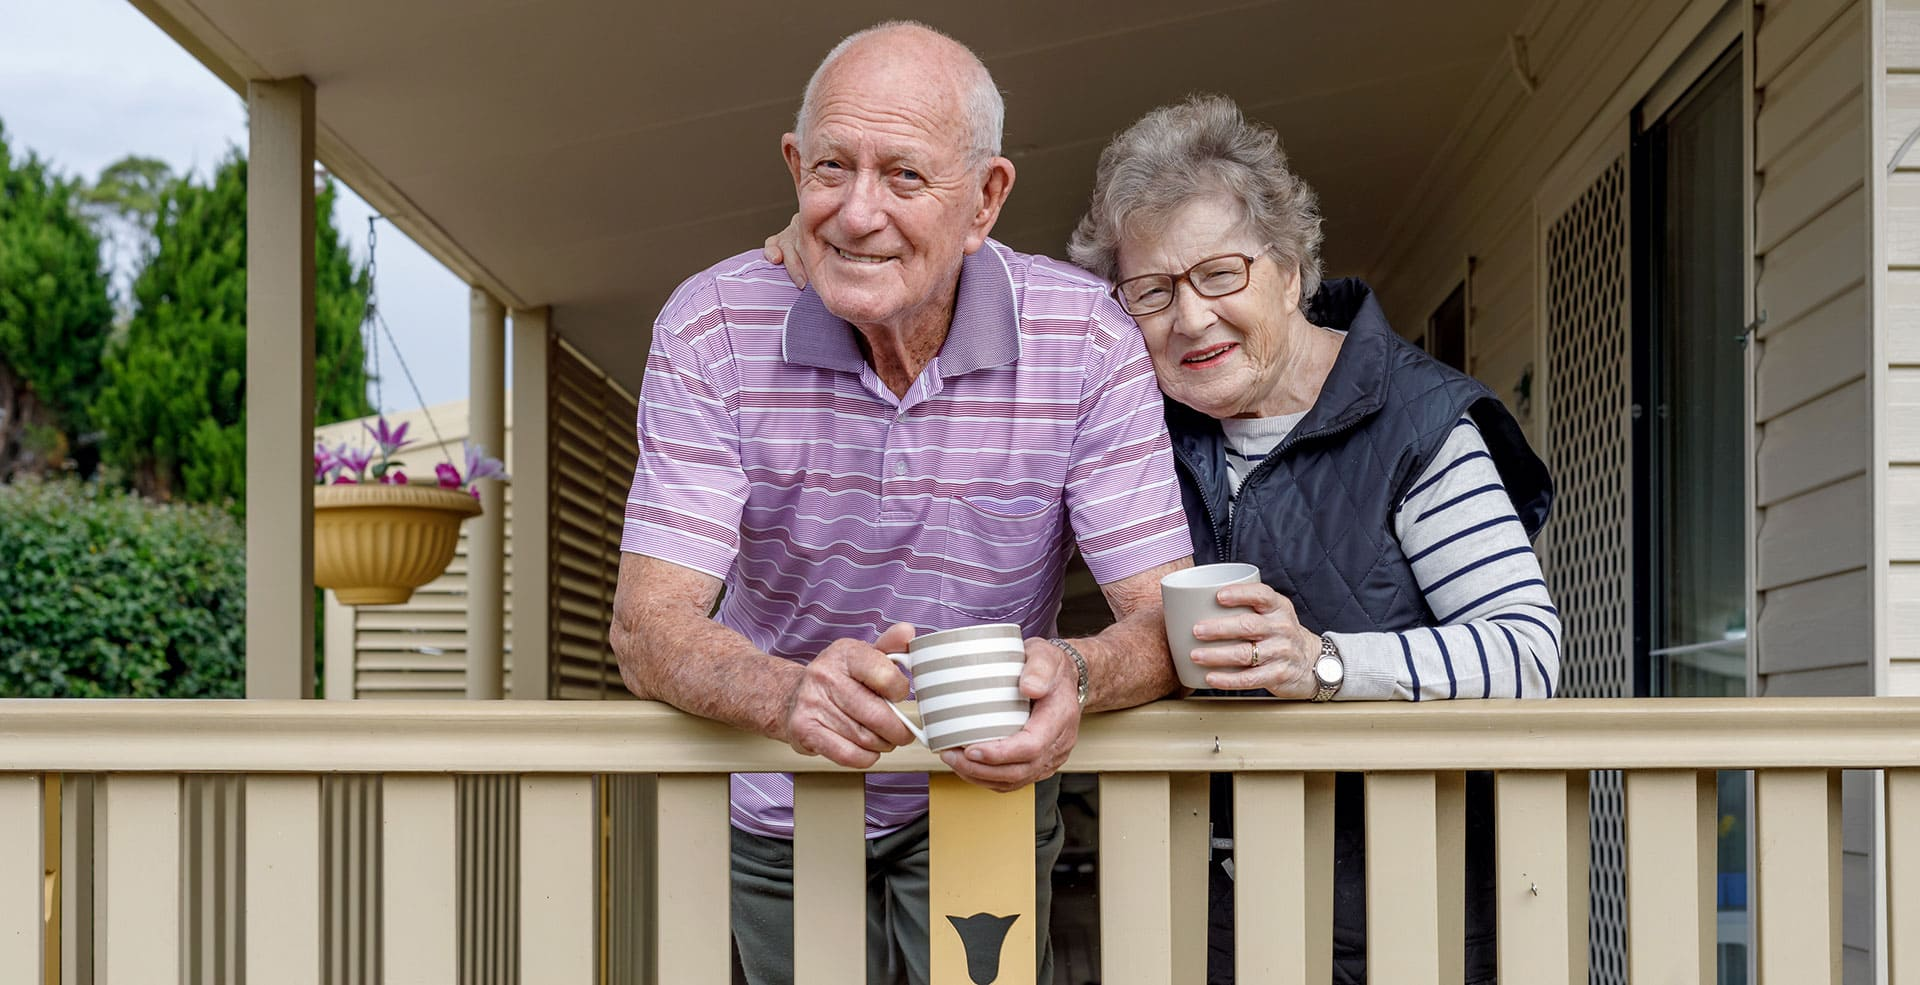 Aging in Place Older Adult Couple on a porch